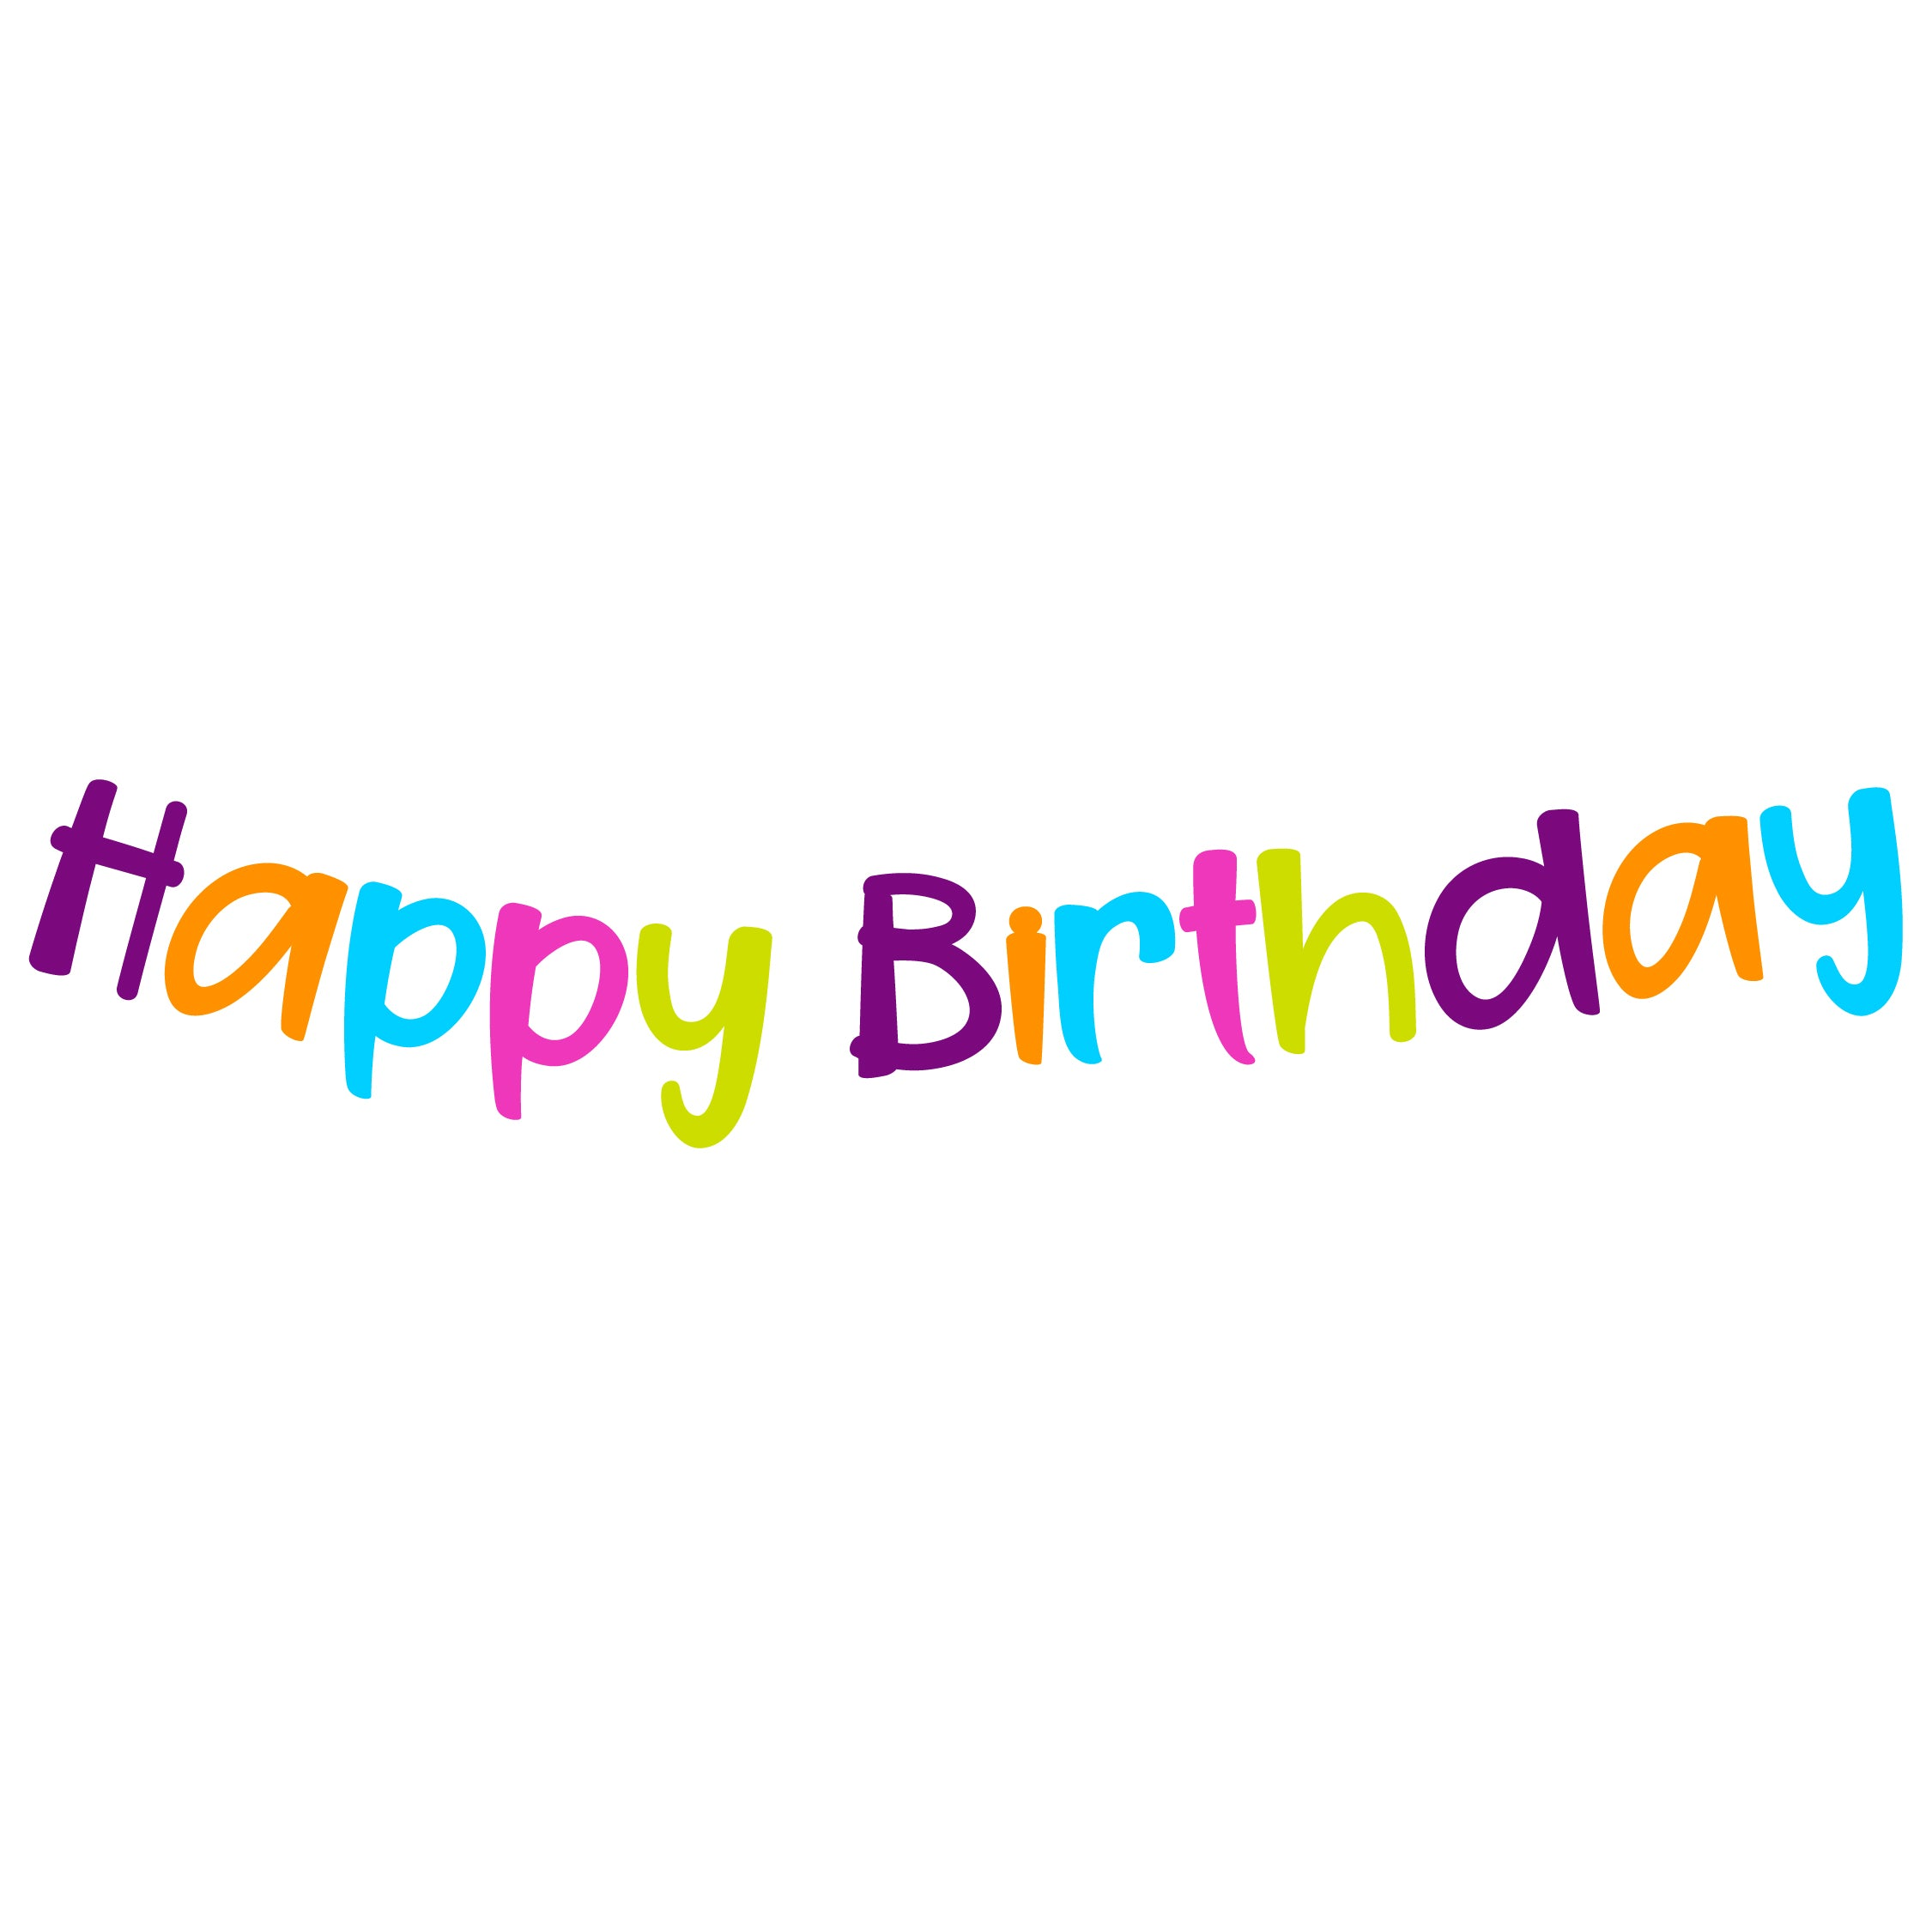 BANNER HAPPY BIRTHDAY LETRAS MULTICOLOR